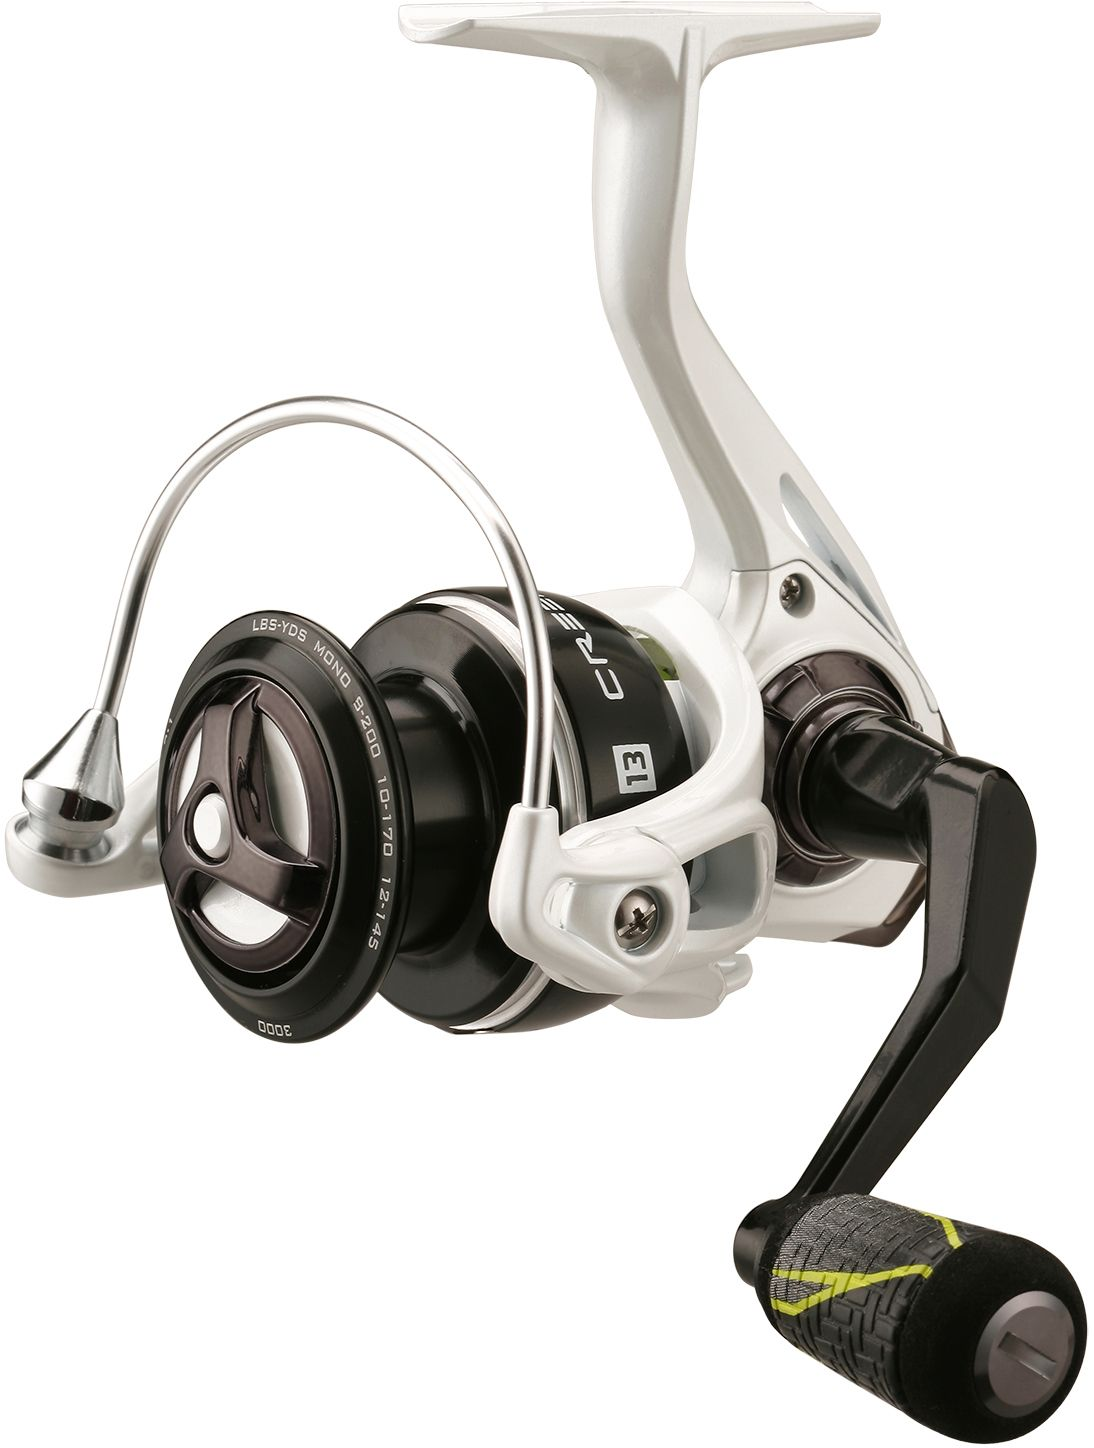 13 Fishing Creed LTE Spinning Reel, 3000, Aluminum